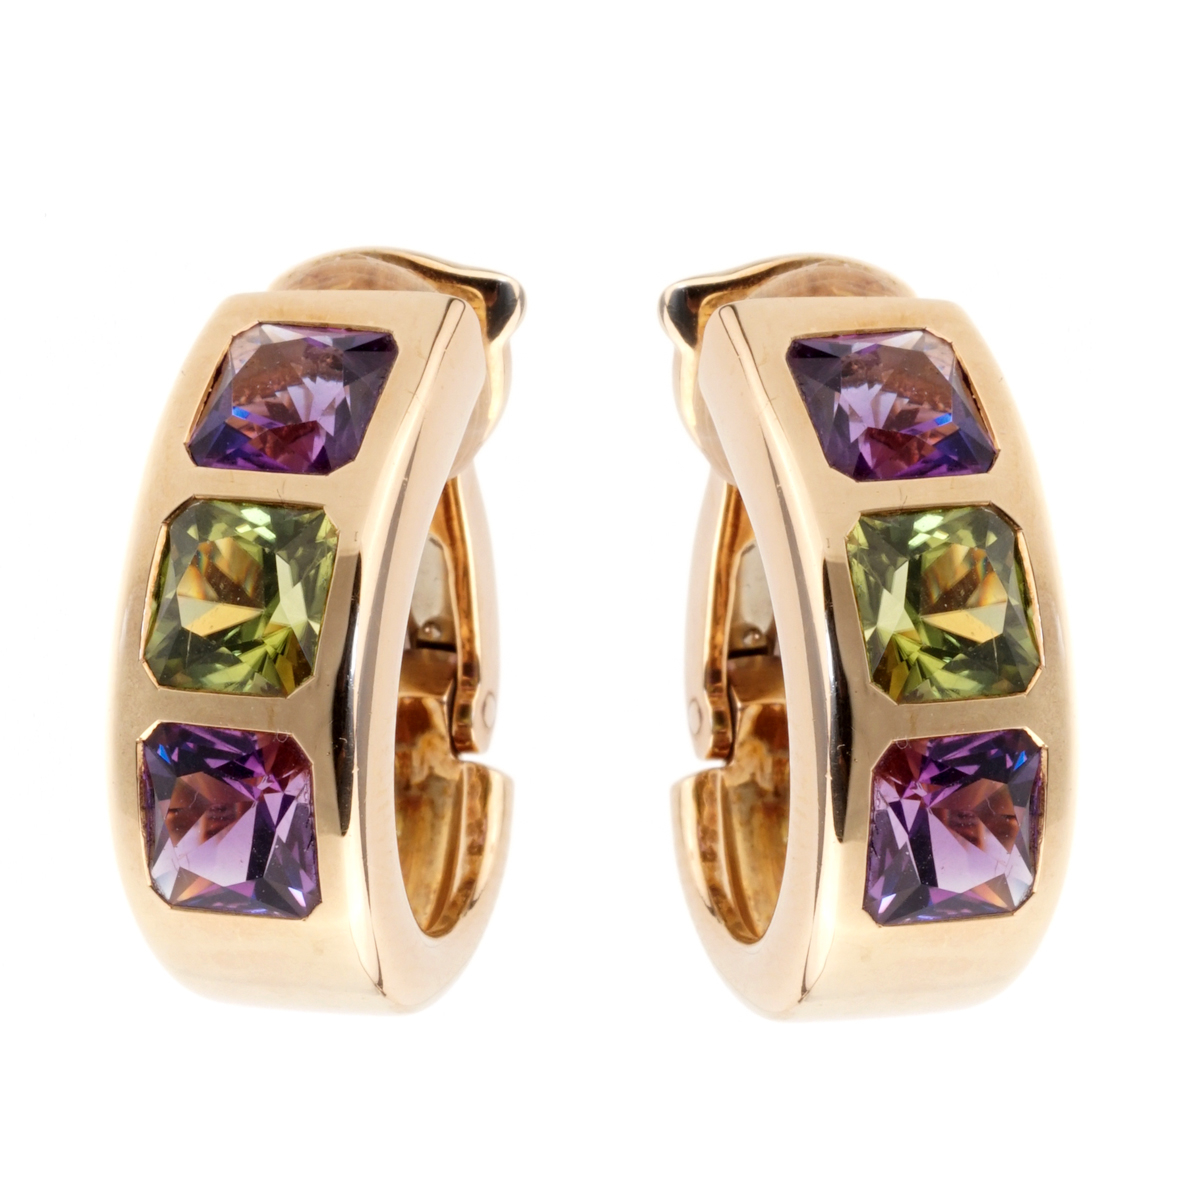 Van Cleef & Arpels Amethyst Peridot 18k Yellow Gold Earrings - Van Cleef and Arpels Jewelry